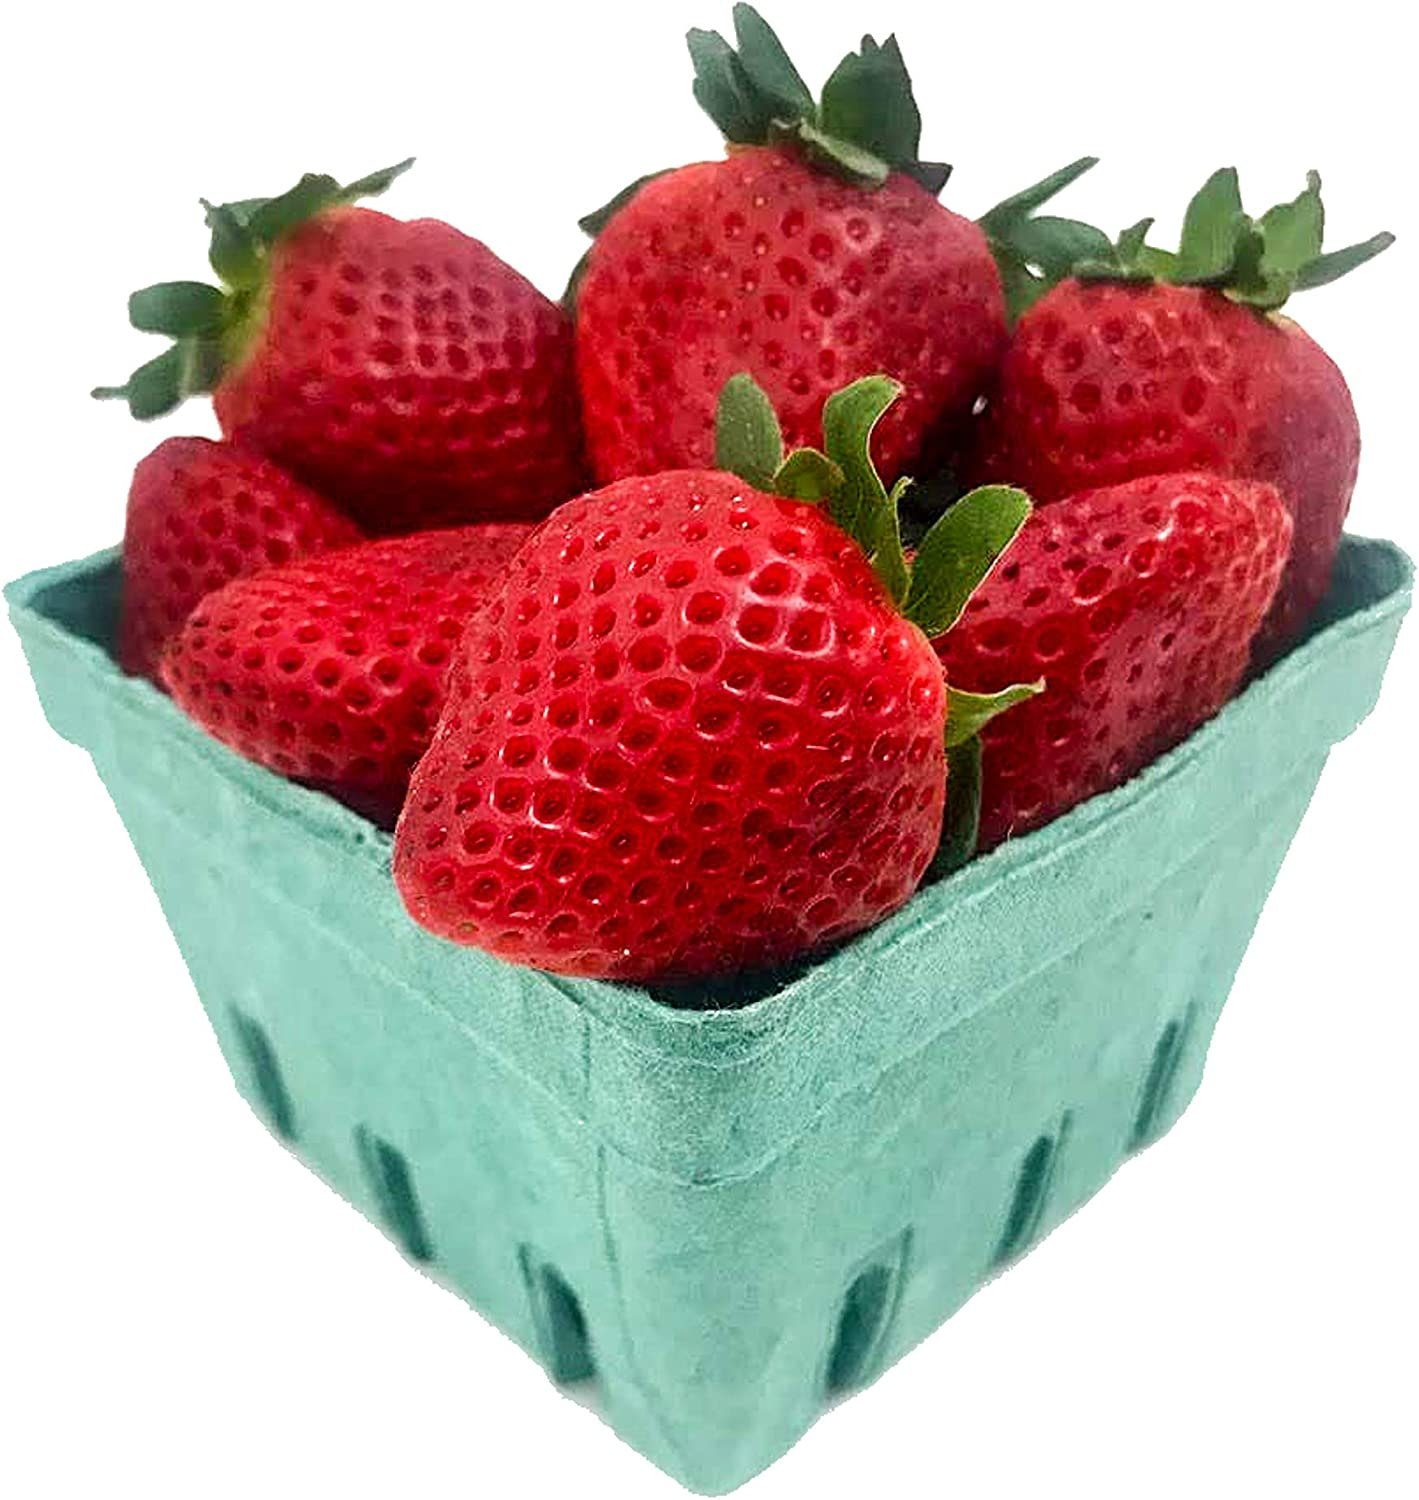 Quart Green Fiber Fruit/Berry Basket Container (25 Pack) for Strawberry Blueberries Tomatoes and Produce